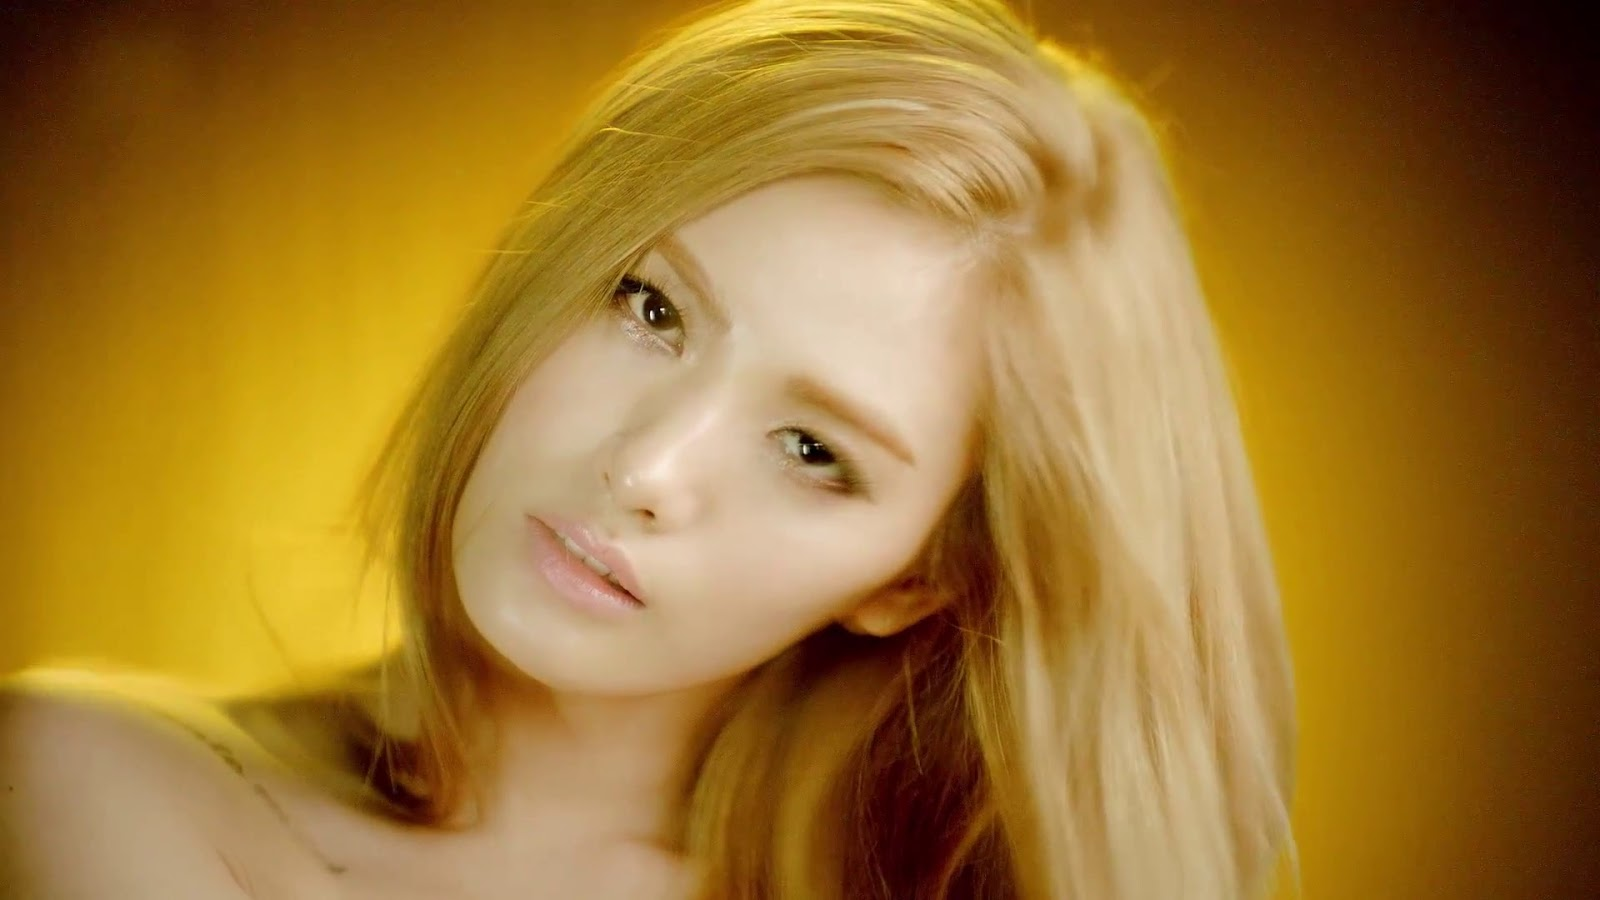 After School Nana First Love Hot Sexy Wallpaper HD 4 1600 1600x900